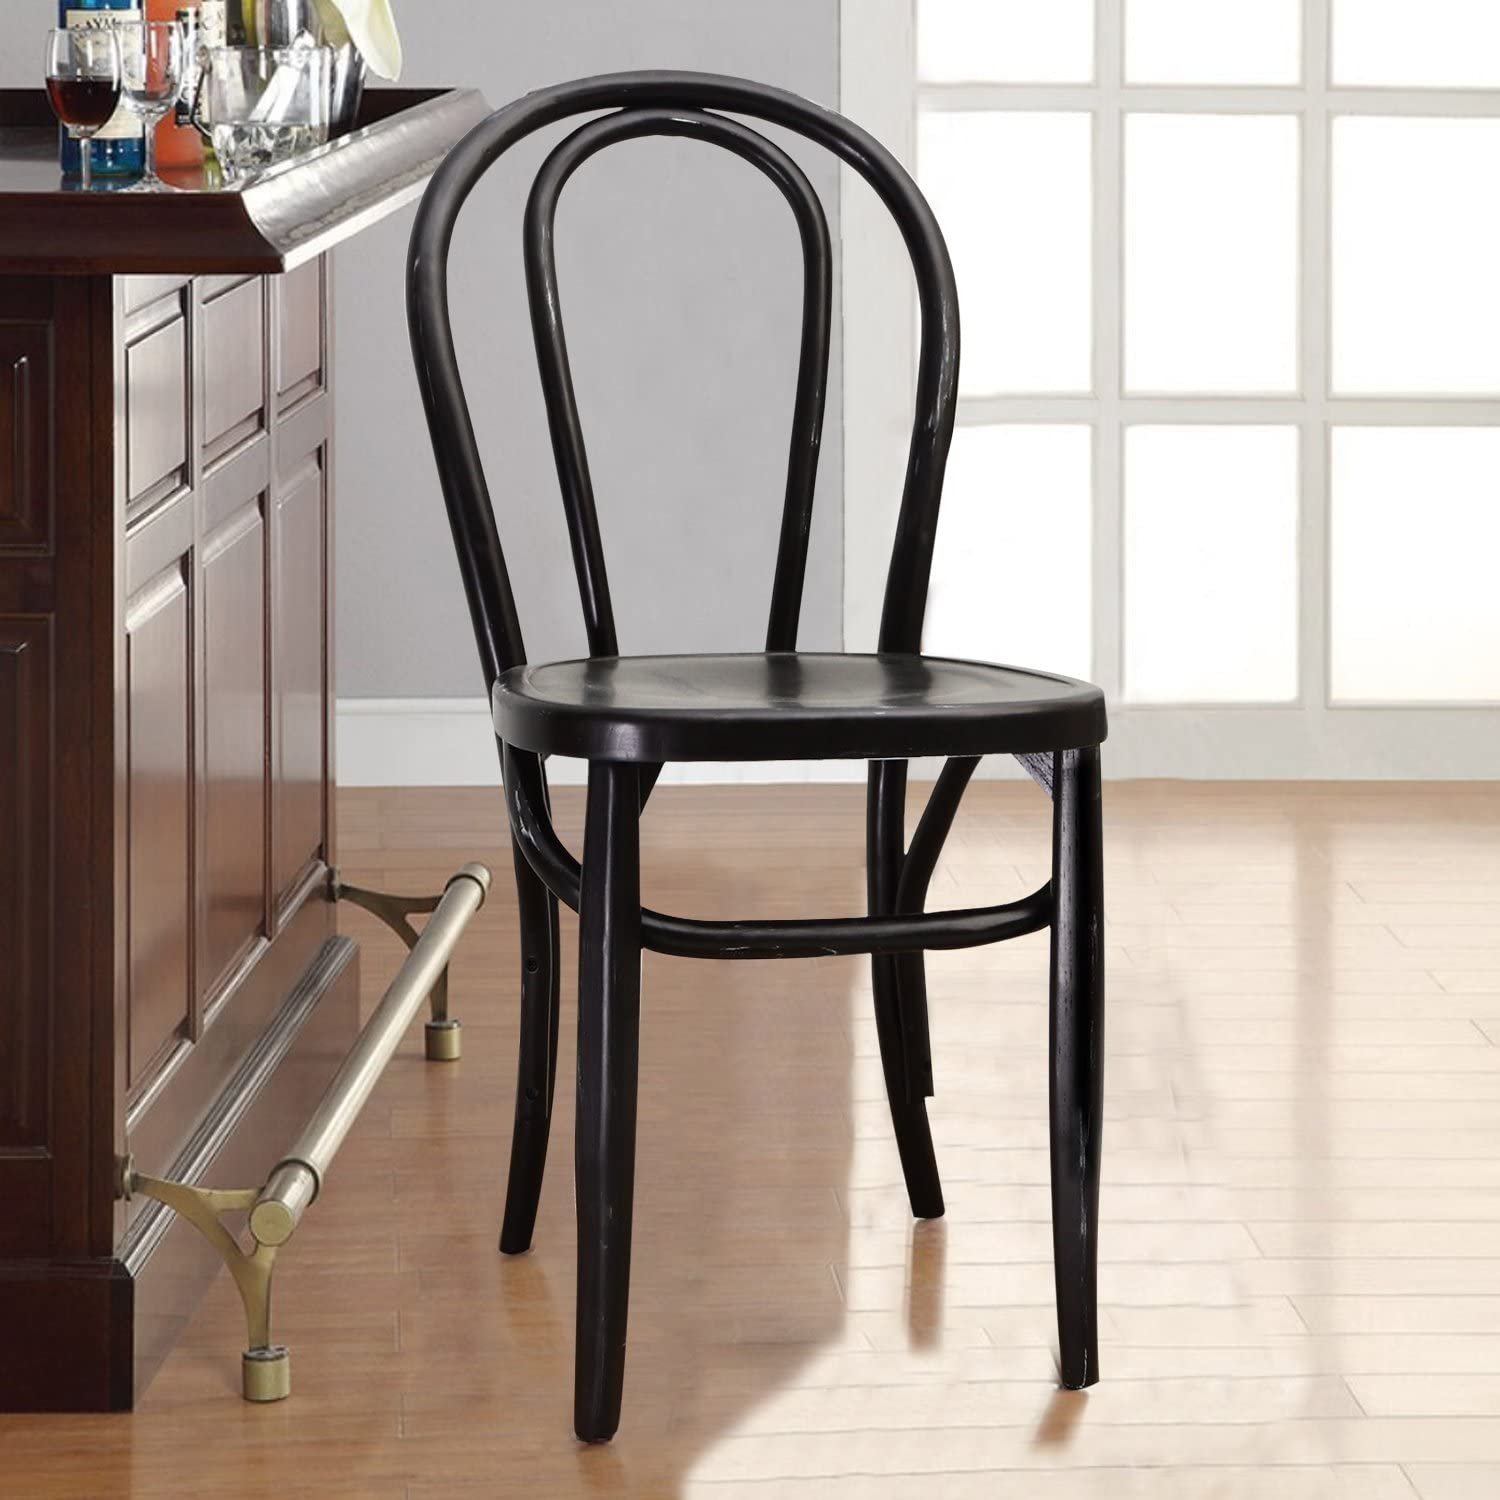 Lovely Joveco Vintage Style Solid Wood Dining Chair   Set Of 2 (Black)